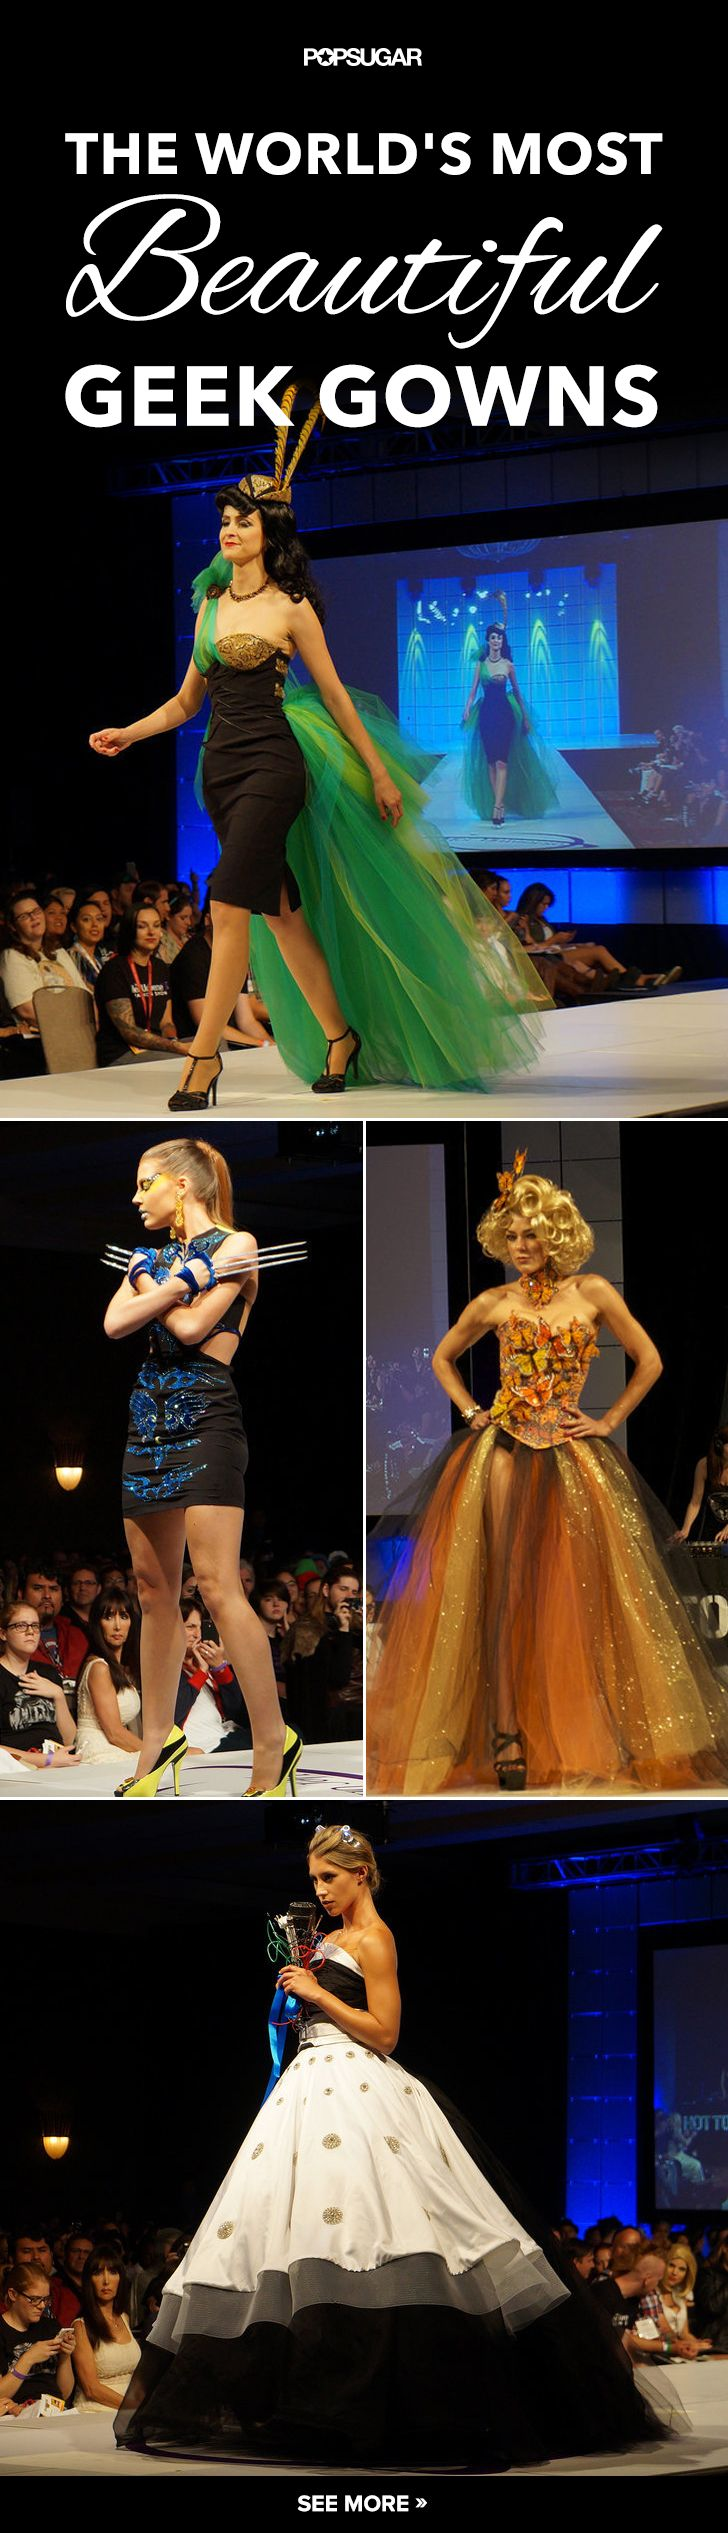 Loki and Daleks as geek couture . . . this is the fashion show you don't want to miss!